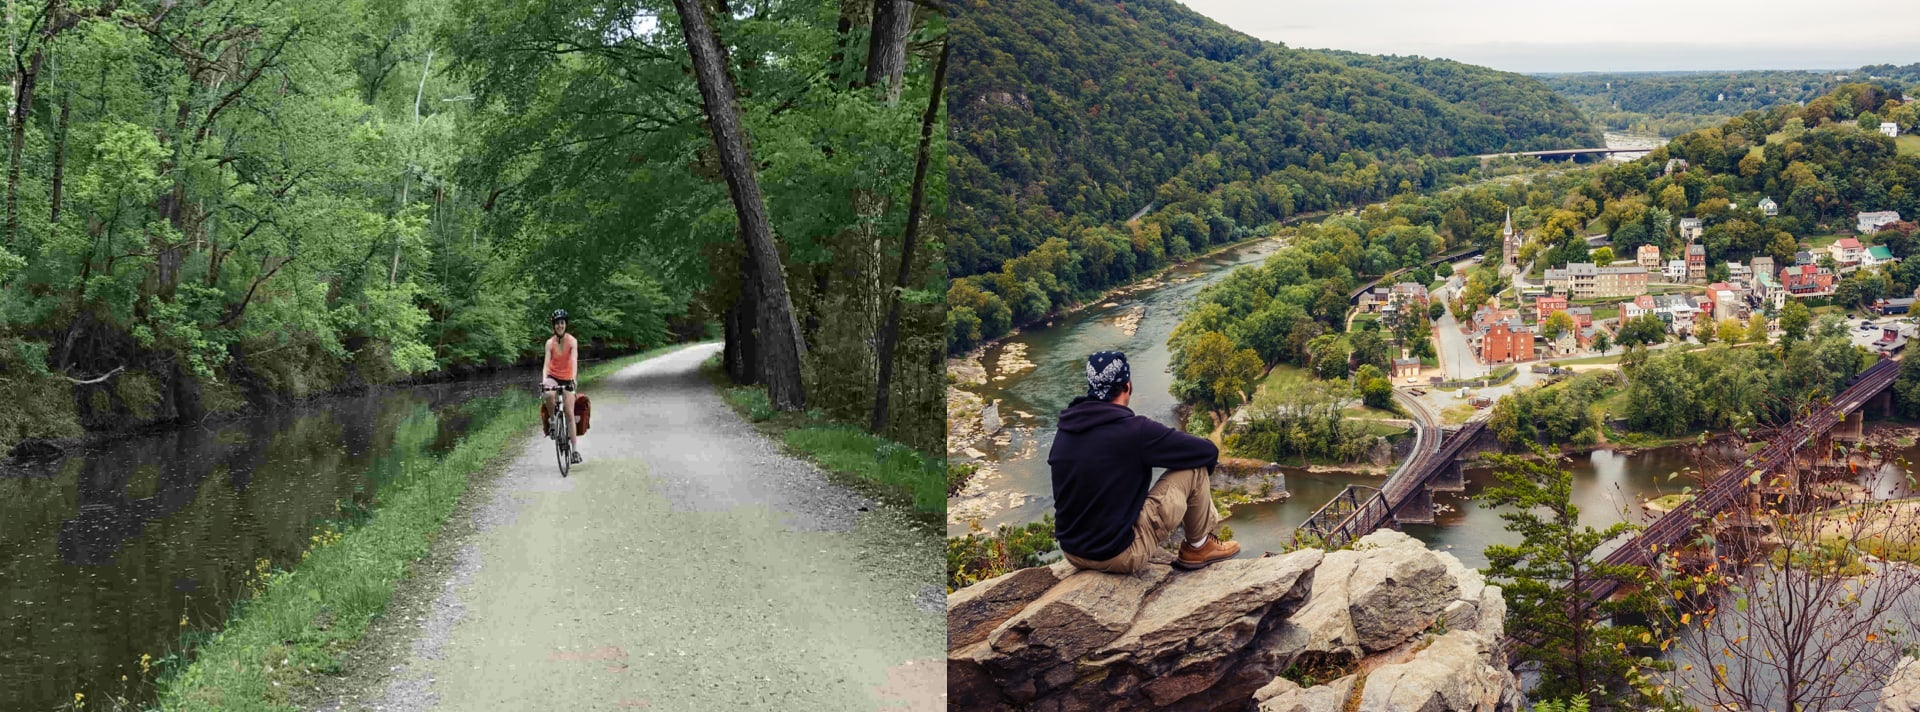 cycling and camping along the c&o canal towpath